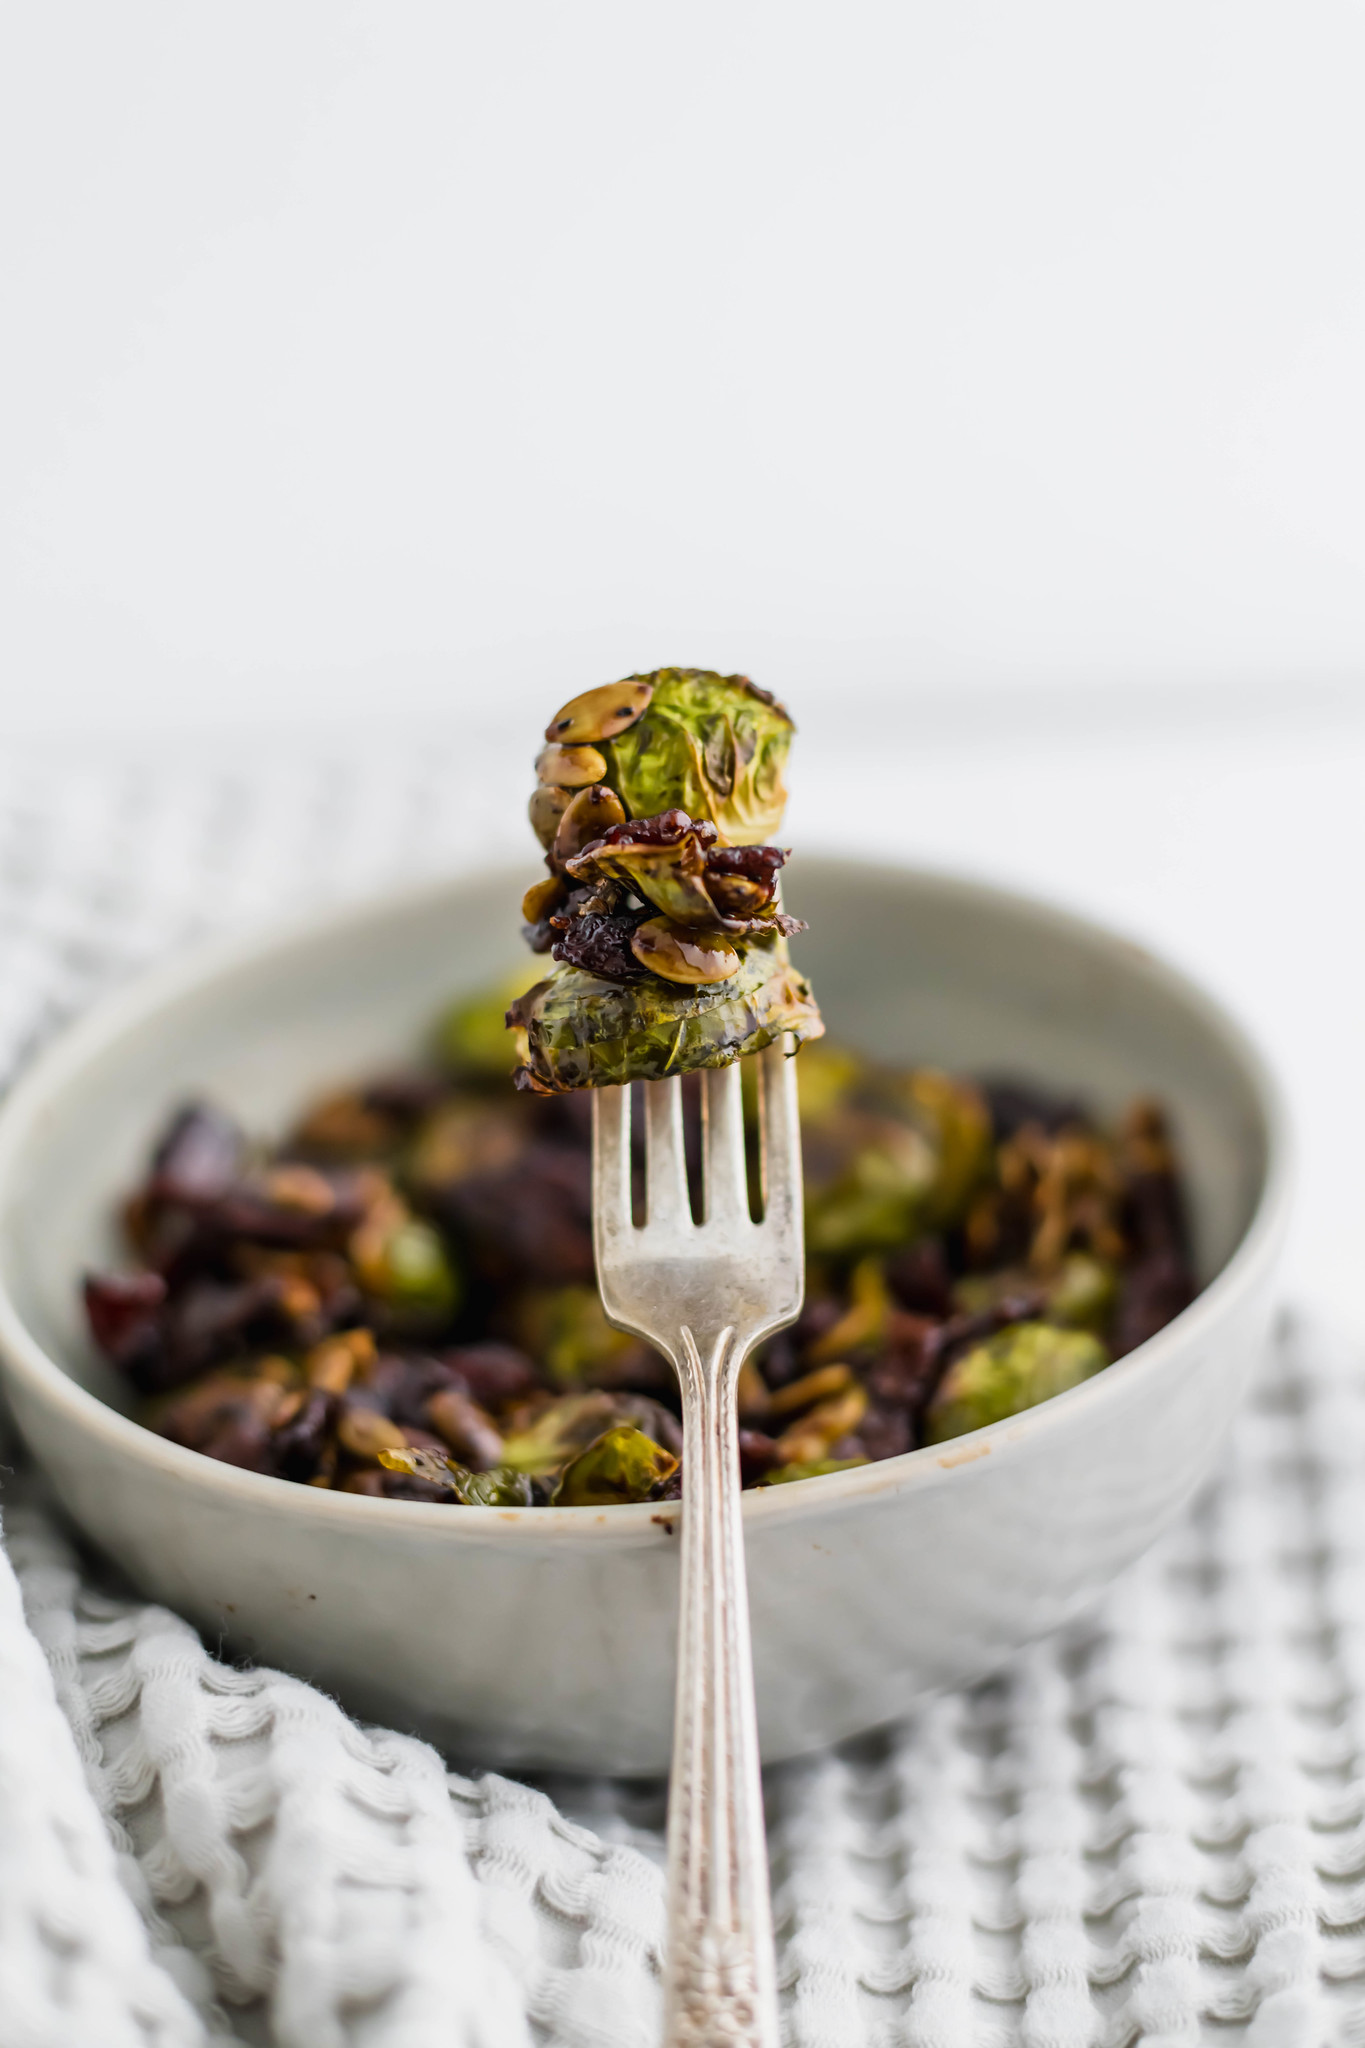 Honey Balsamic Brussels Sprouts are roasted perfectly in the oven then drizzled with the tastiest sweet and savory sauce. Topped with crispy bacon and pumpkin seeds for the perfect crunch.